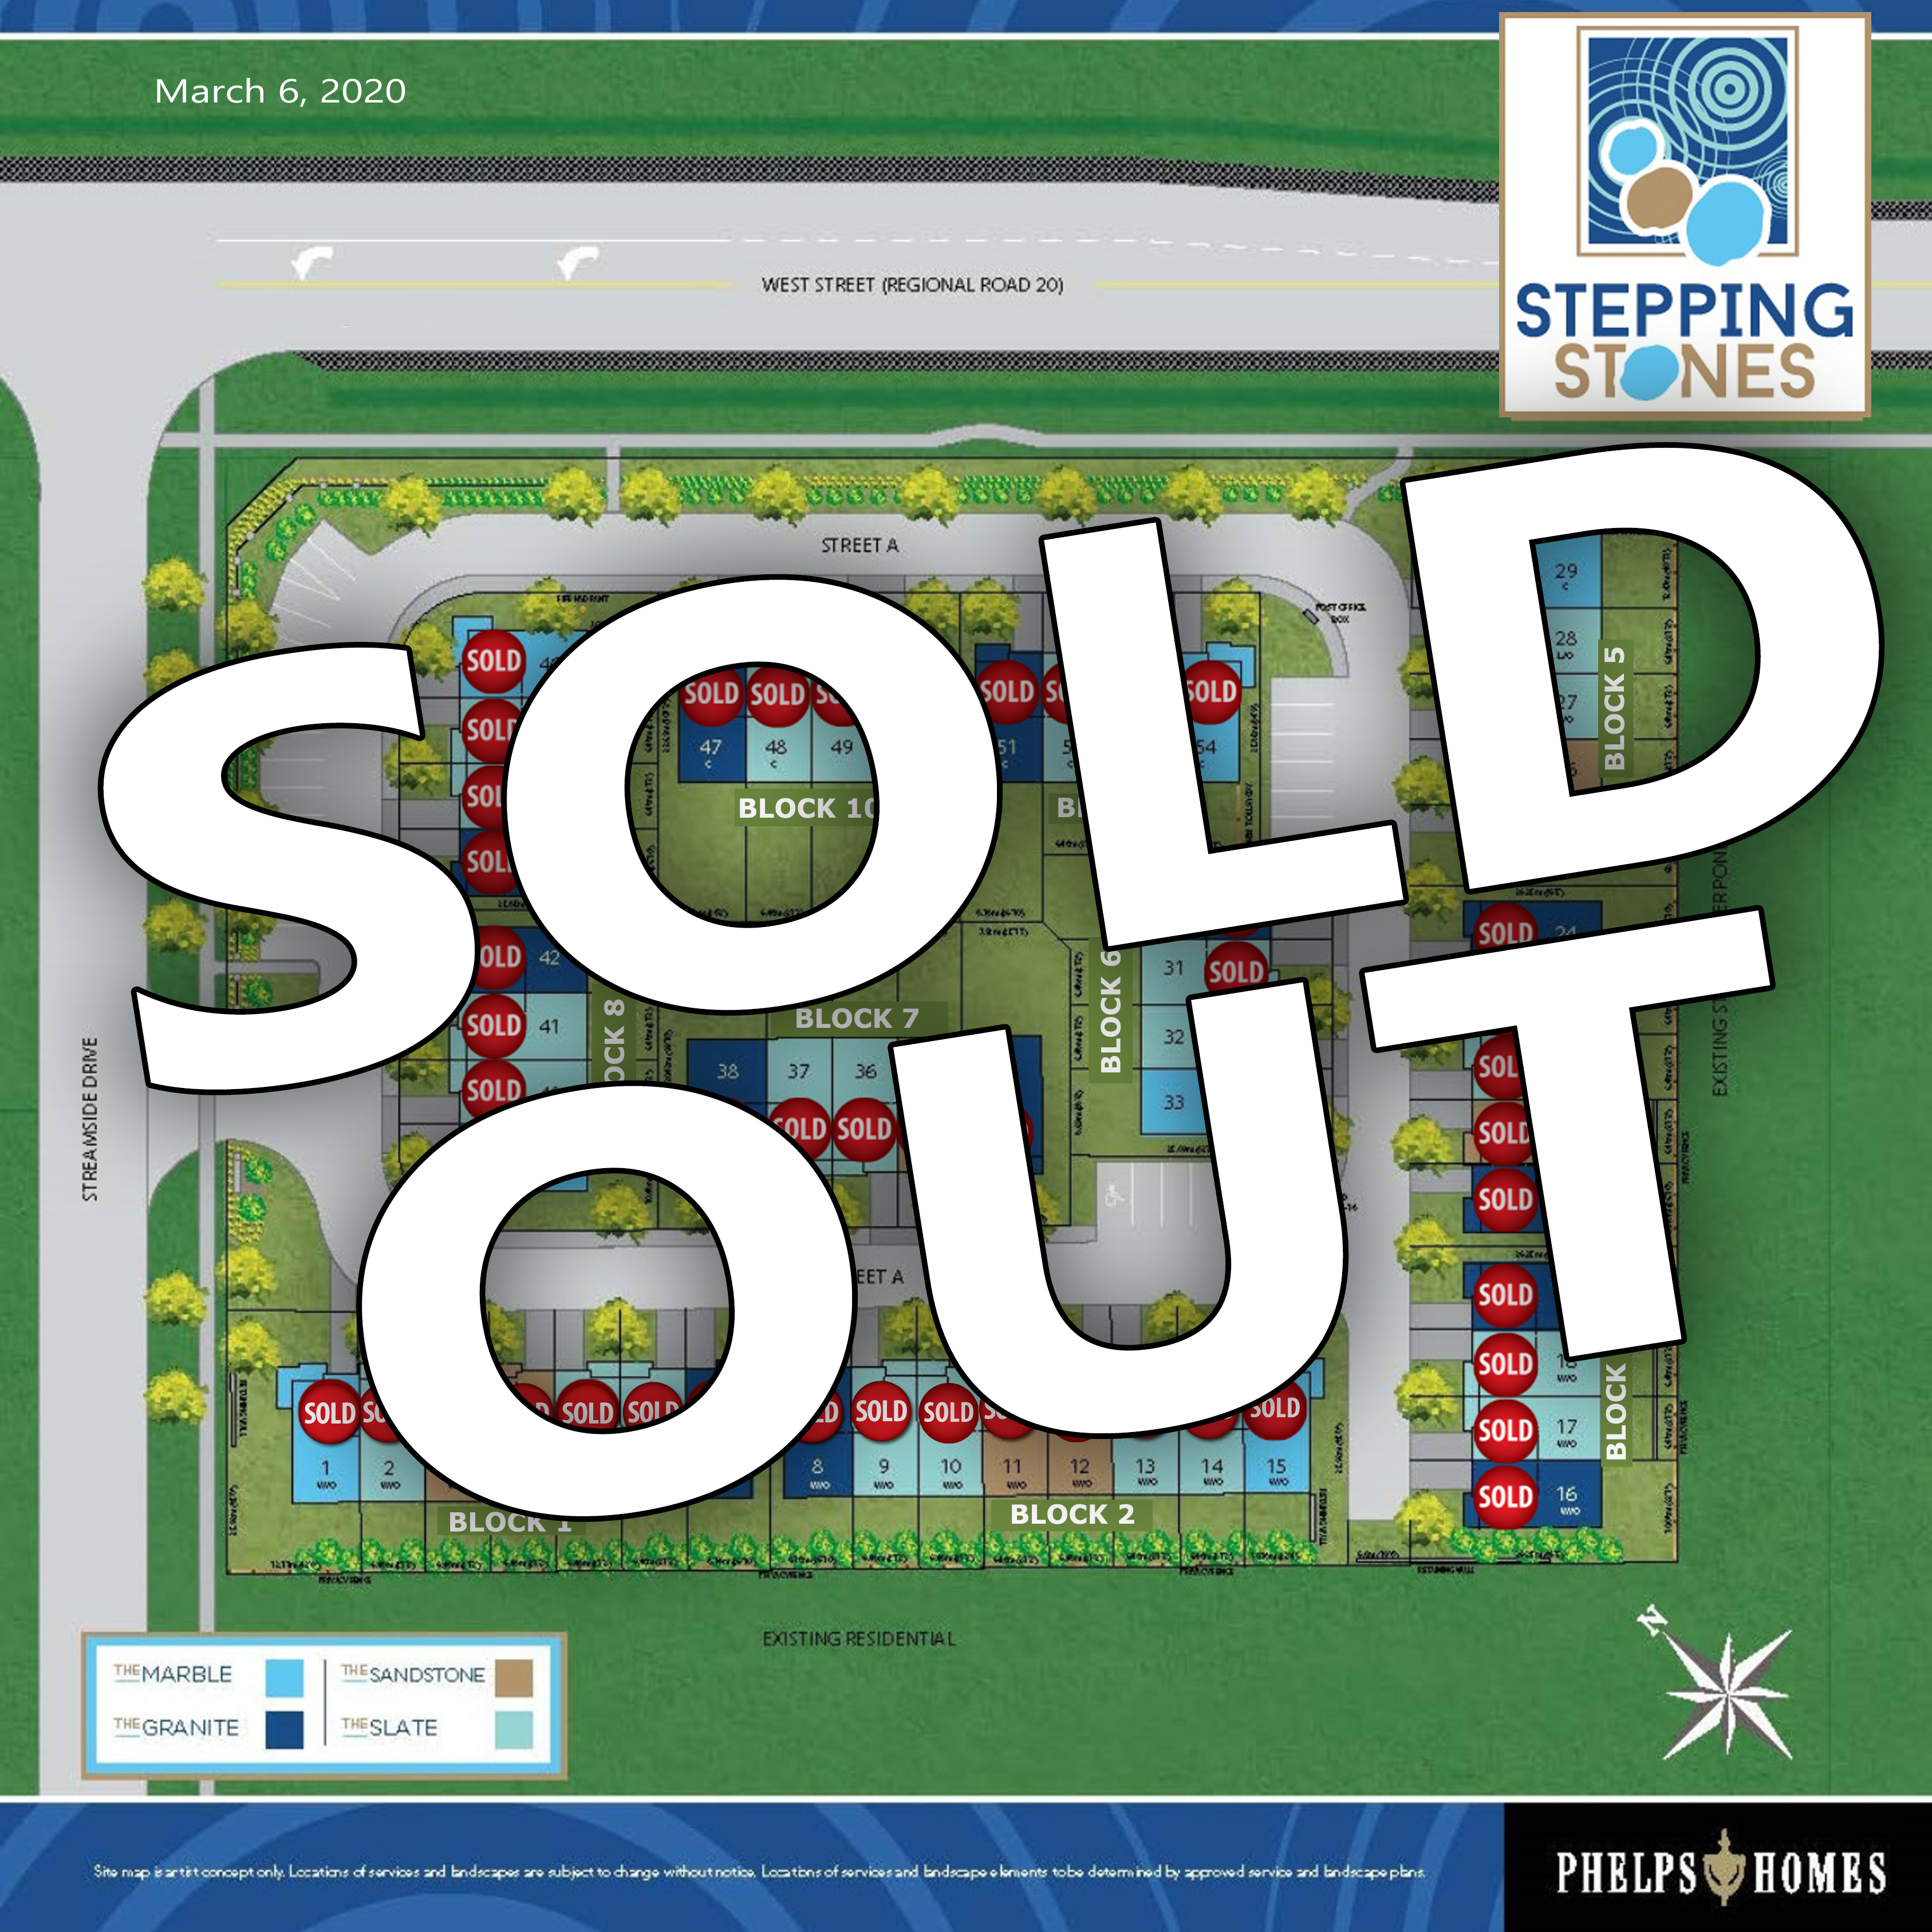 Stepping Stones Site Plan - SOLD OUT - 03.09